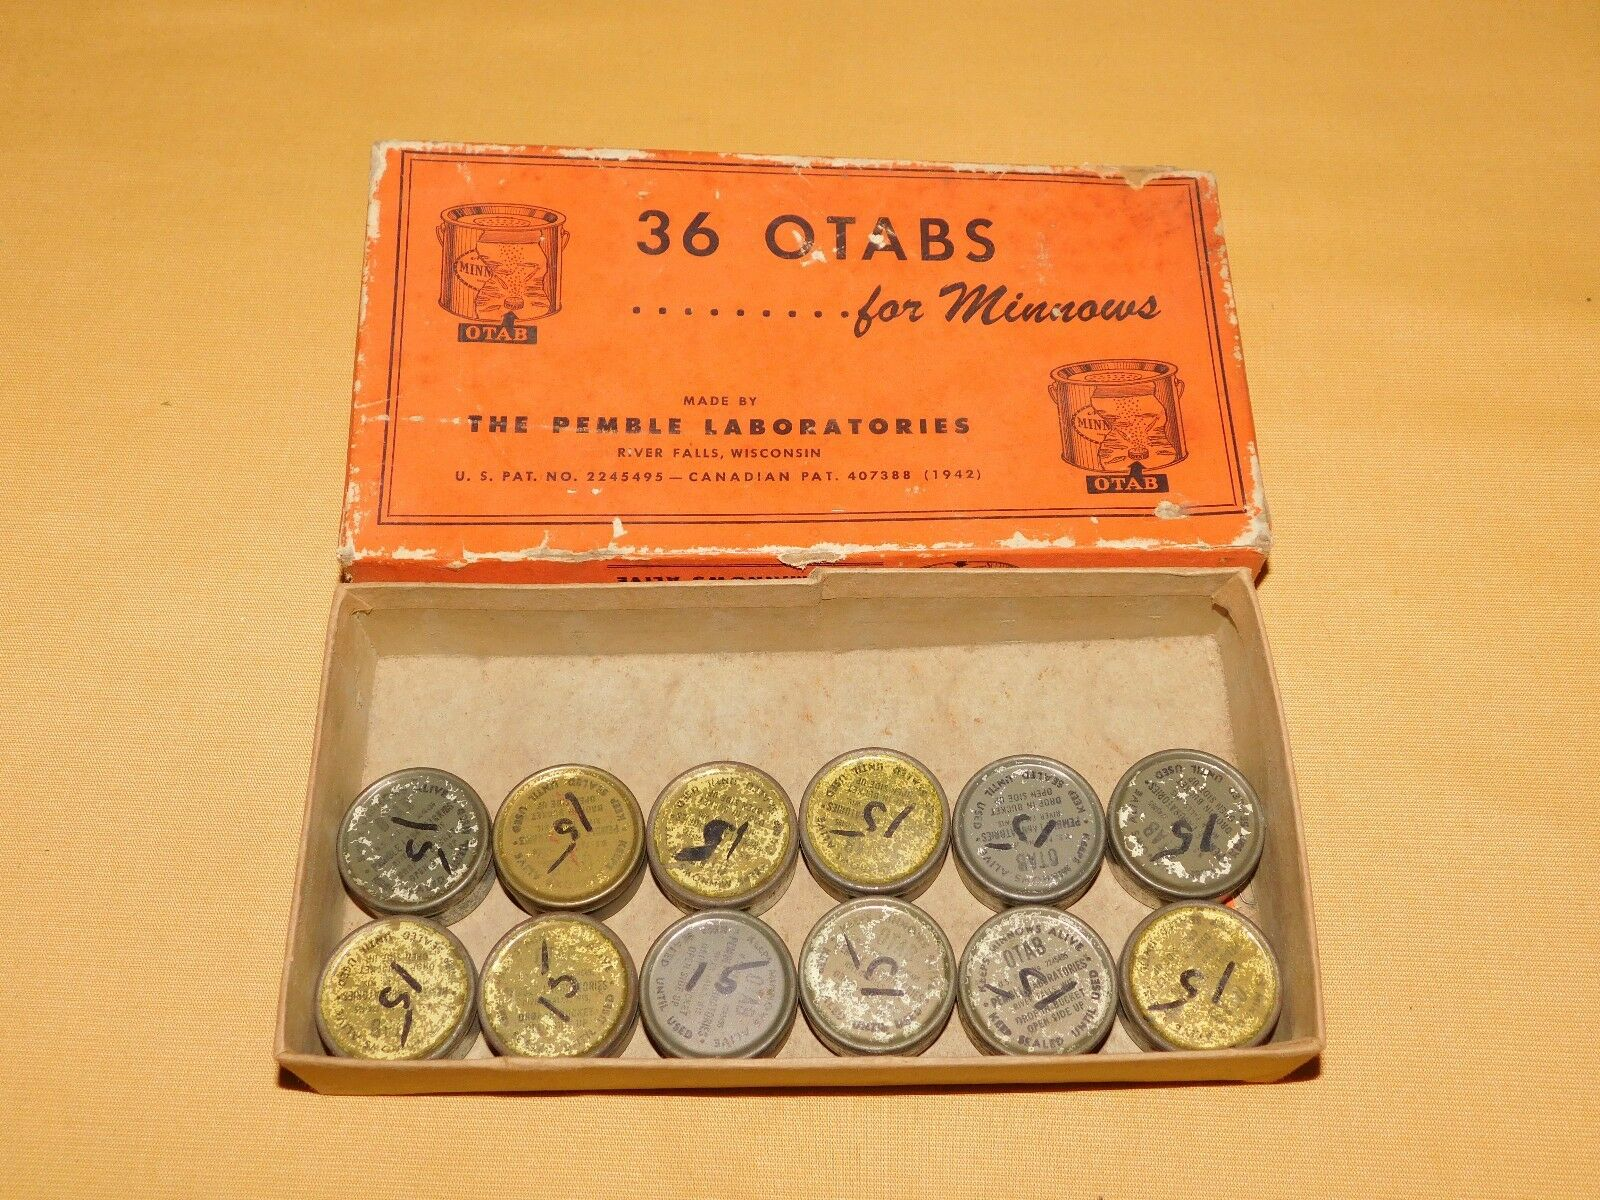 VINTAGE FISHING 12 OTABS FOR MINNOWS IN BOX